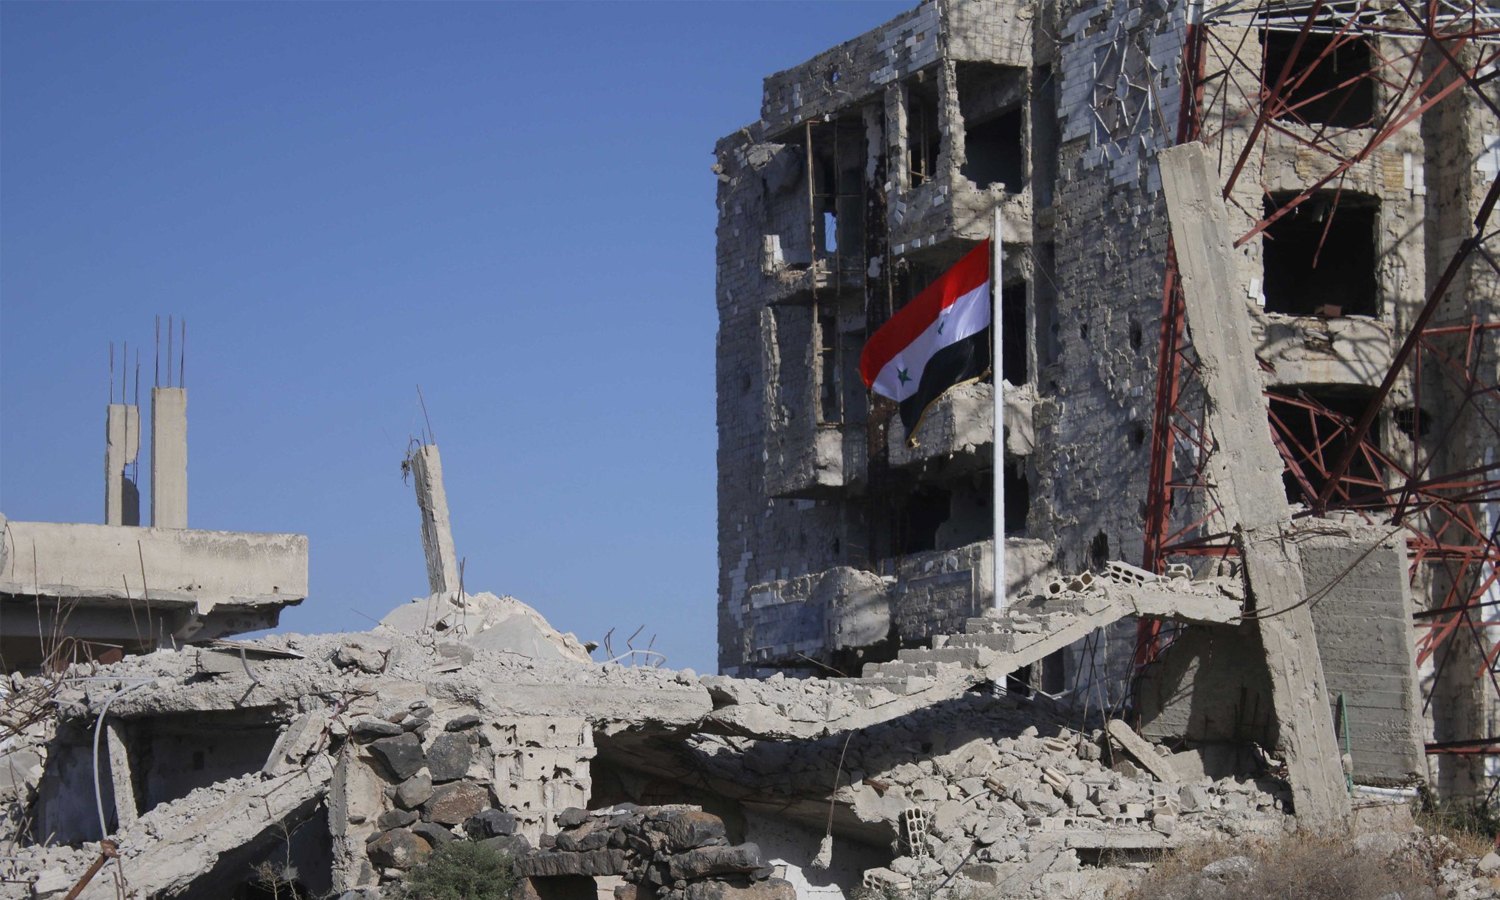 Syrian regime flag hoisted on the rubble of buildings in Daraa city — 12 July 2018 (AFB)